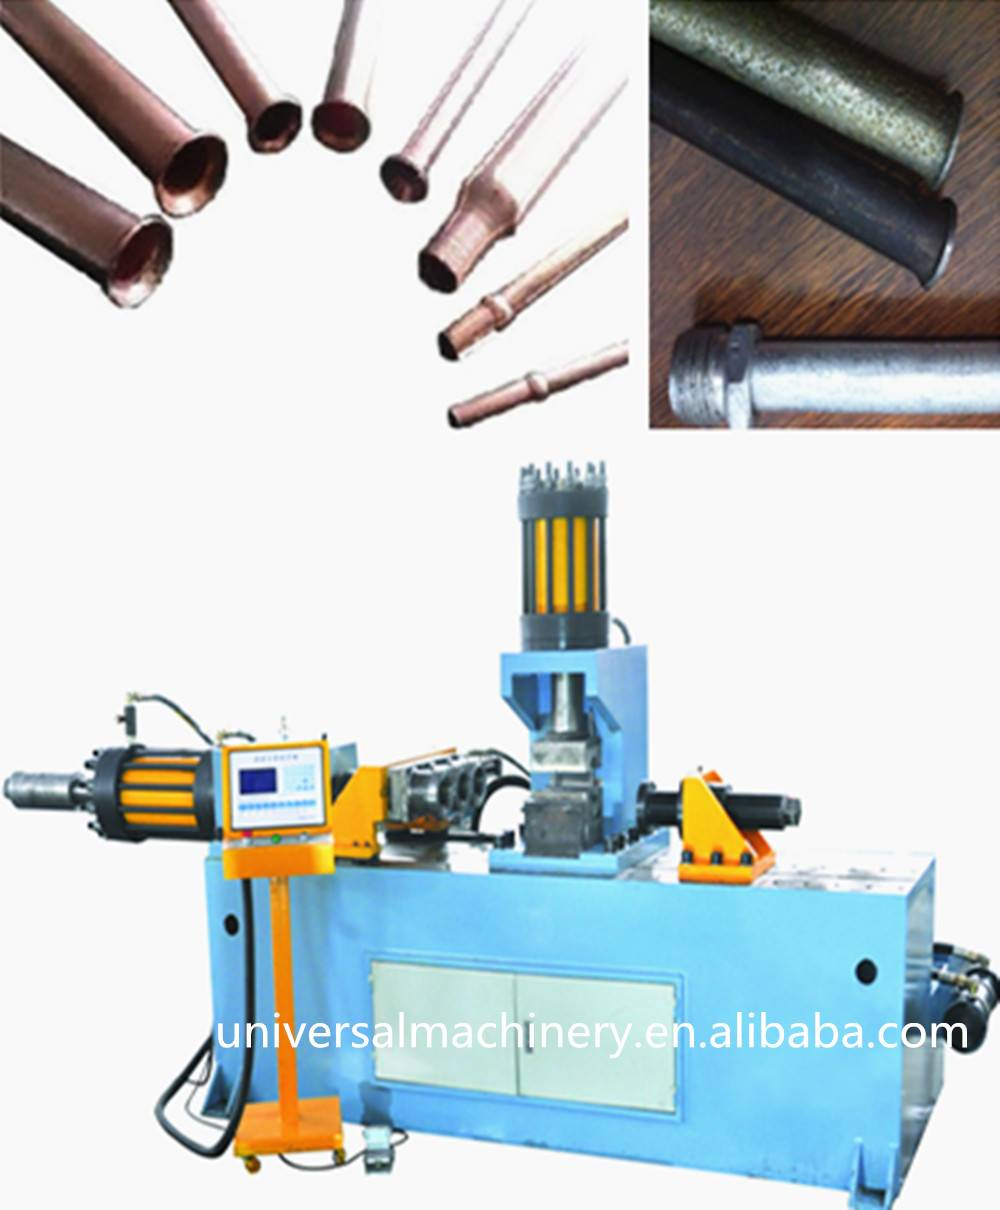 China Factory price Pipe End Forming Machine for Reducing Expanding Flanging